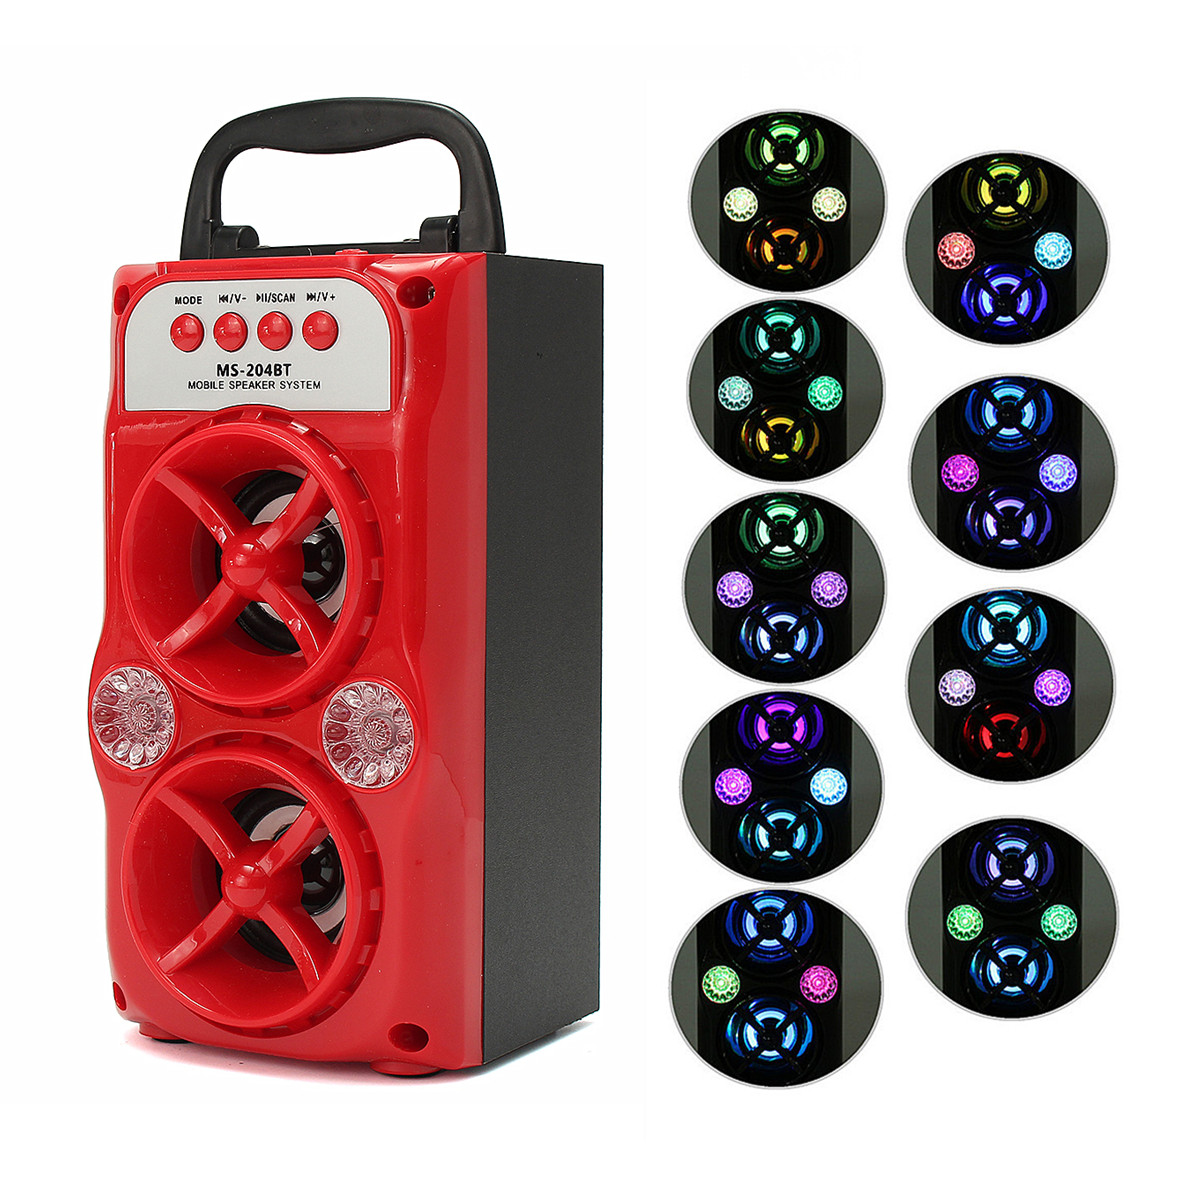 Portable Wireless bluetooth stereo speaker Stereo Party Speaker Rechargeable With USB/TF/AUX/FM Radio LED Indoor Outdoor Home Music Player Super Bass Red